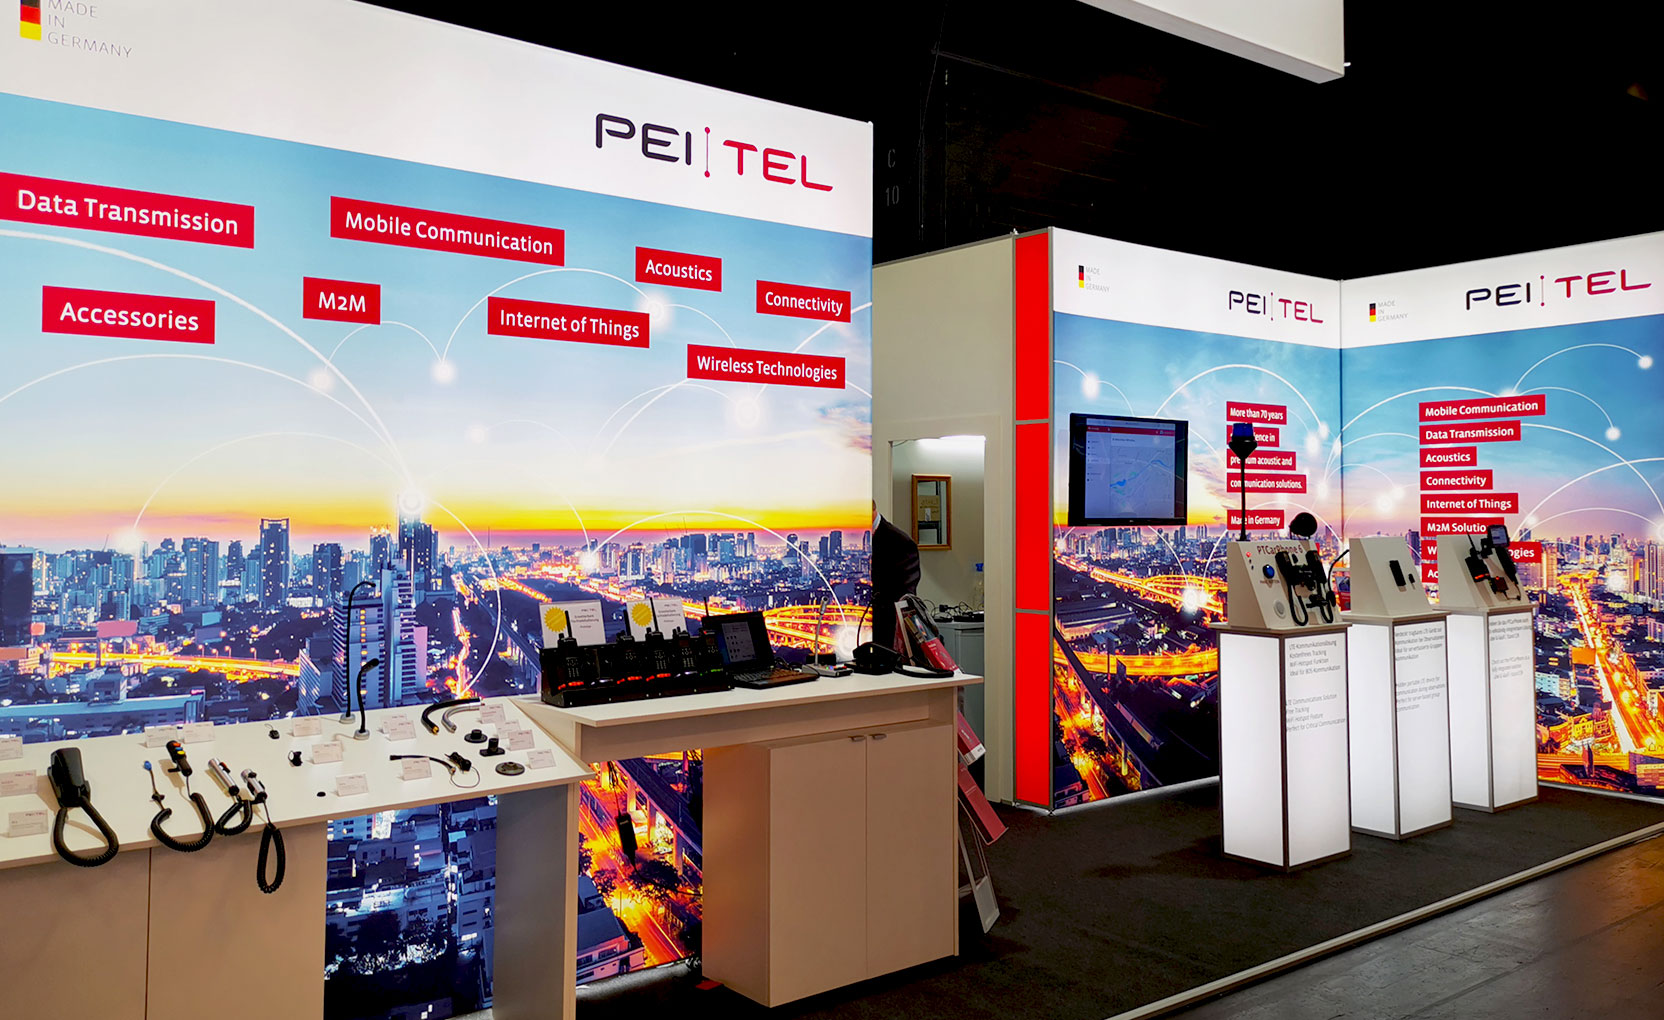 pei tel Messestand